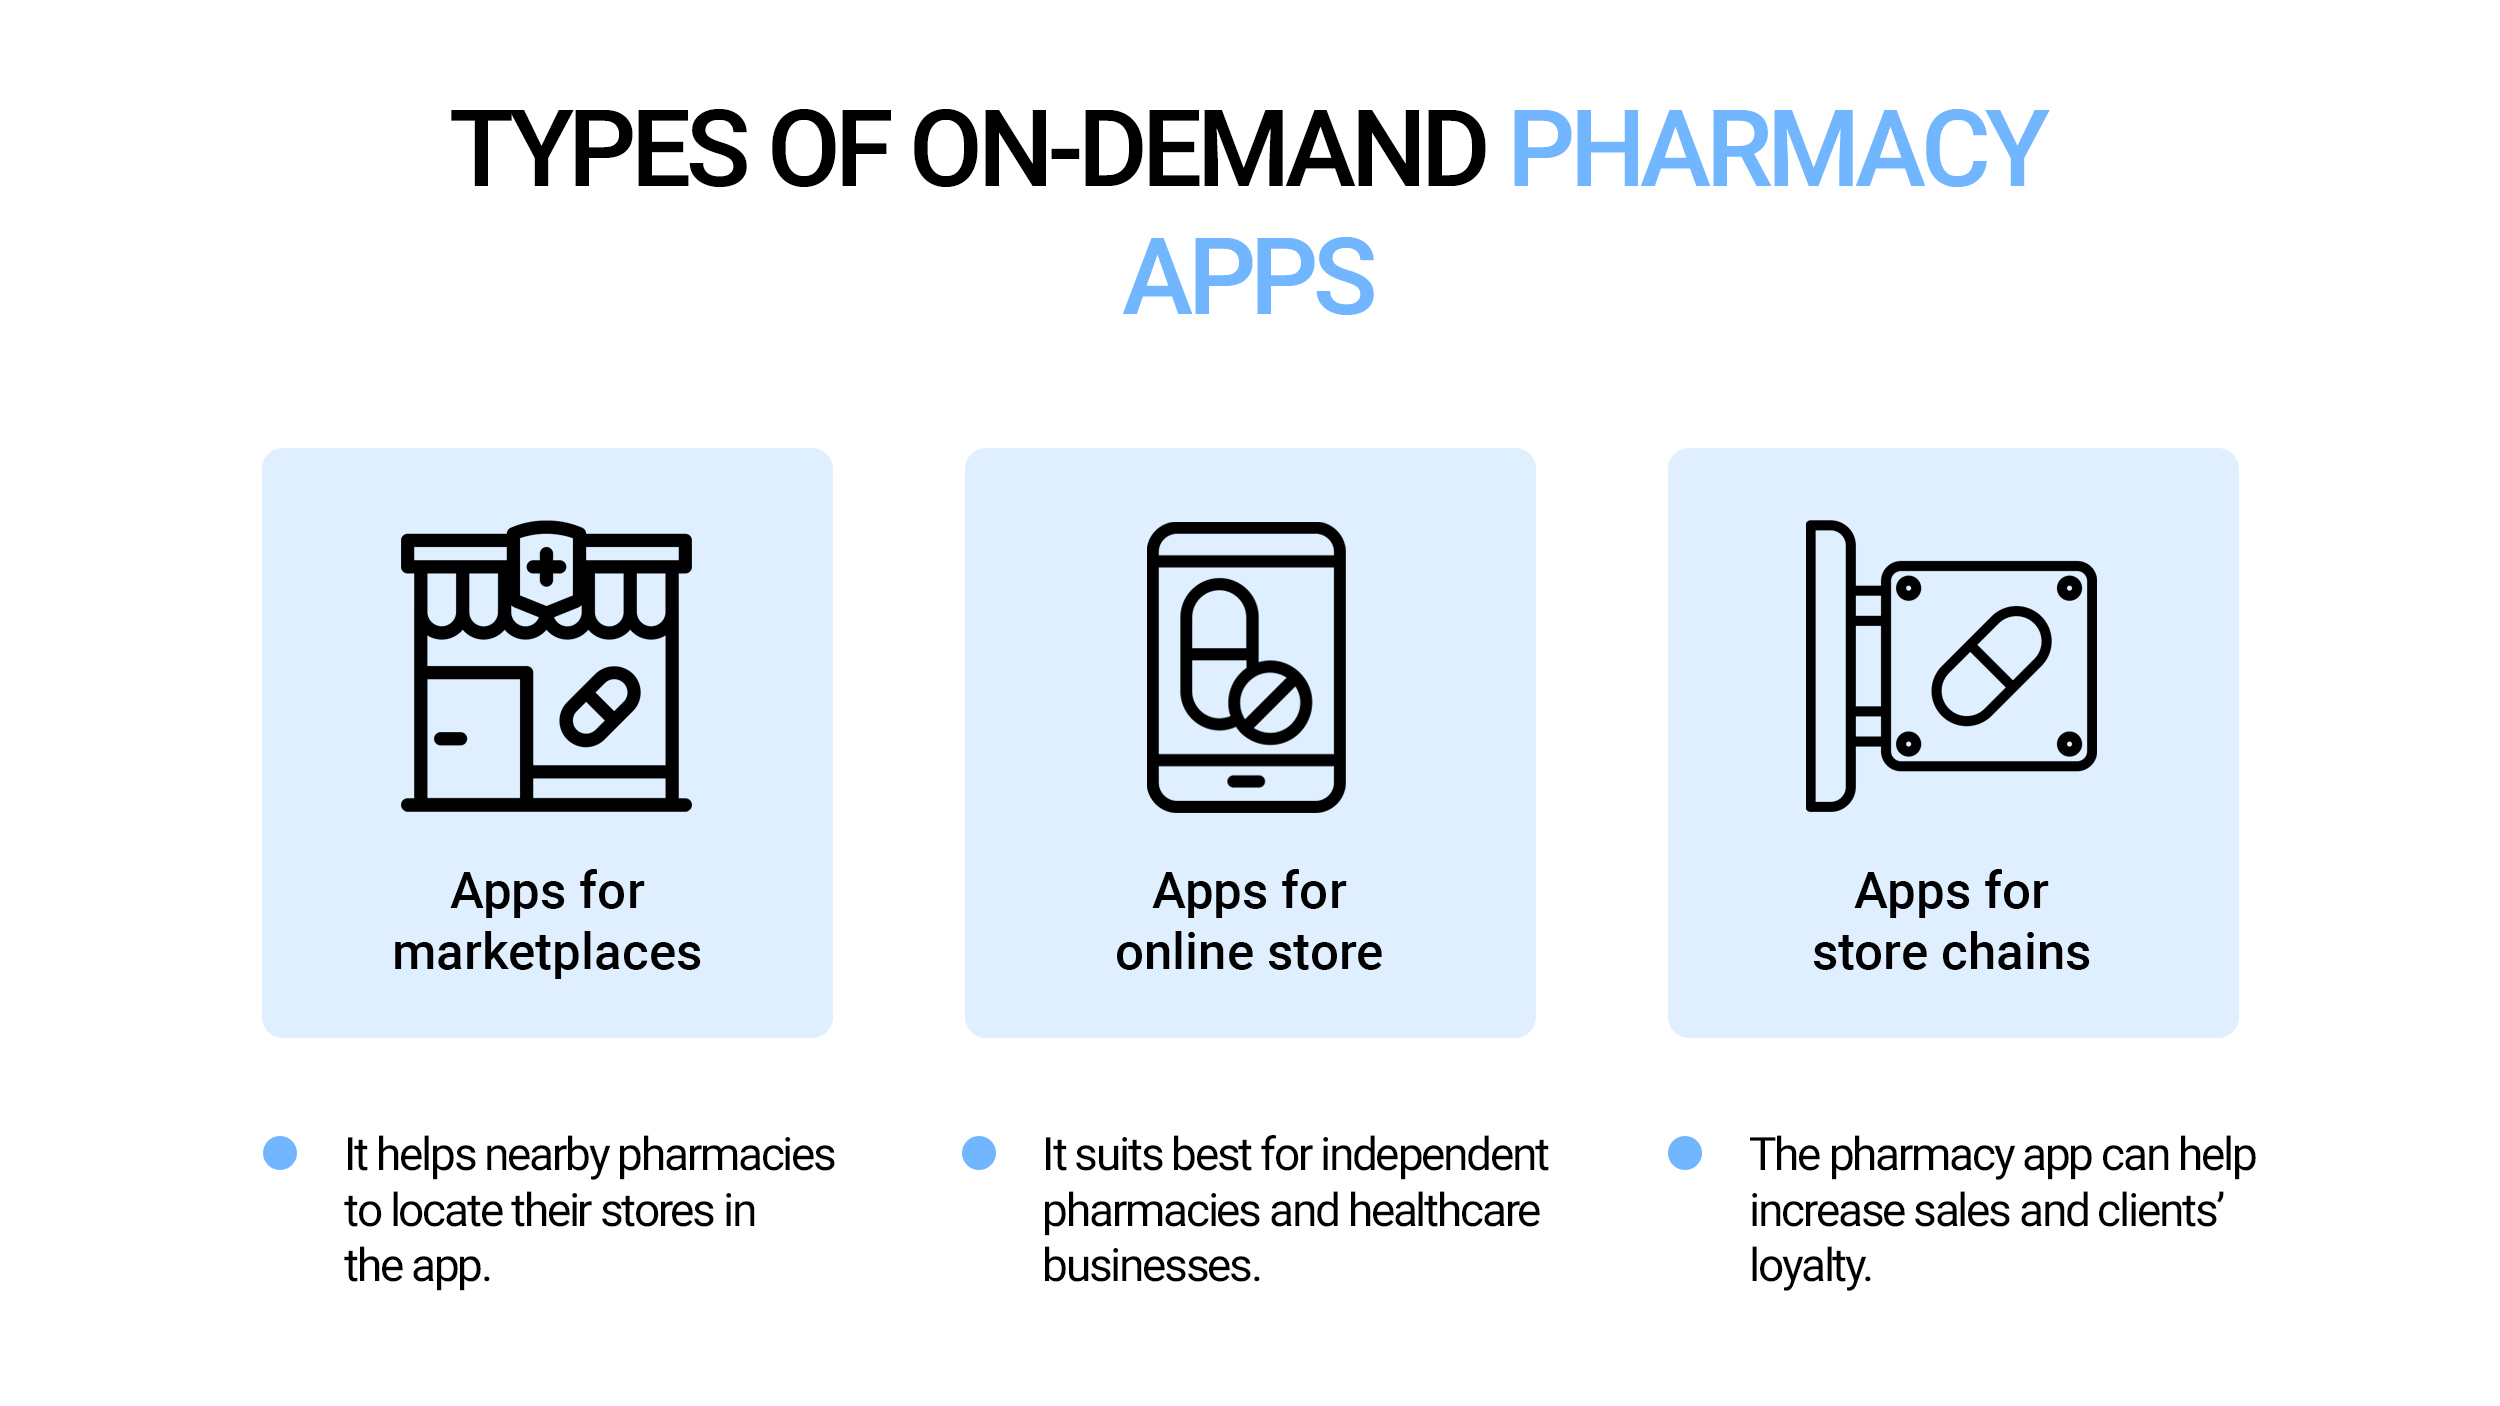 Types of on-demand pharmacy apps